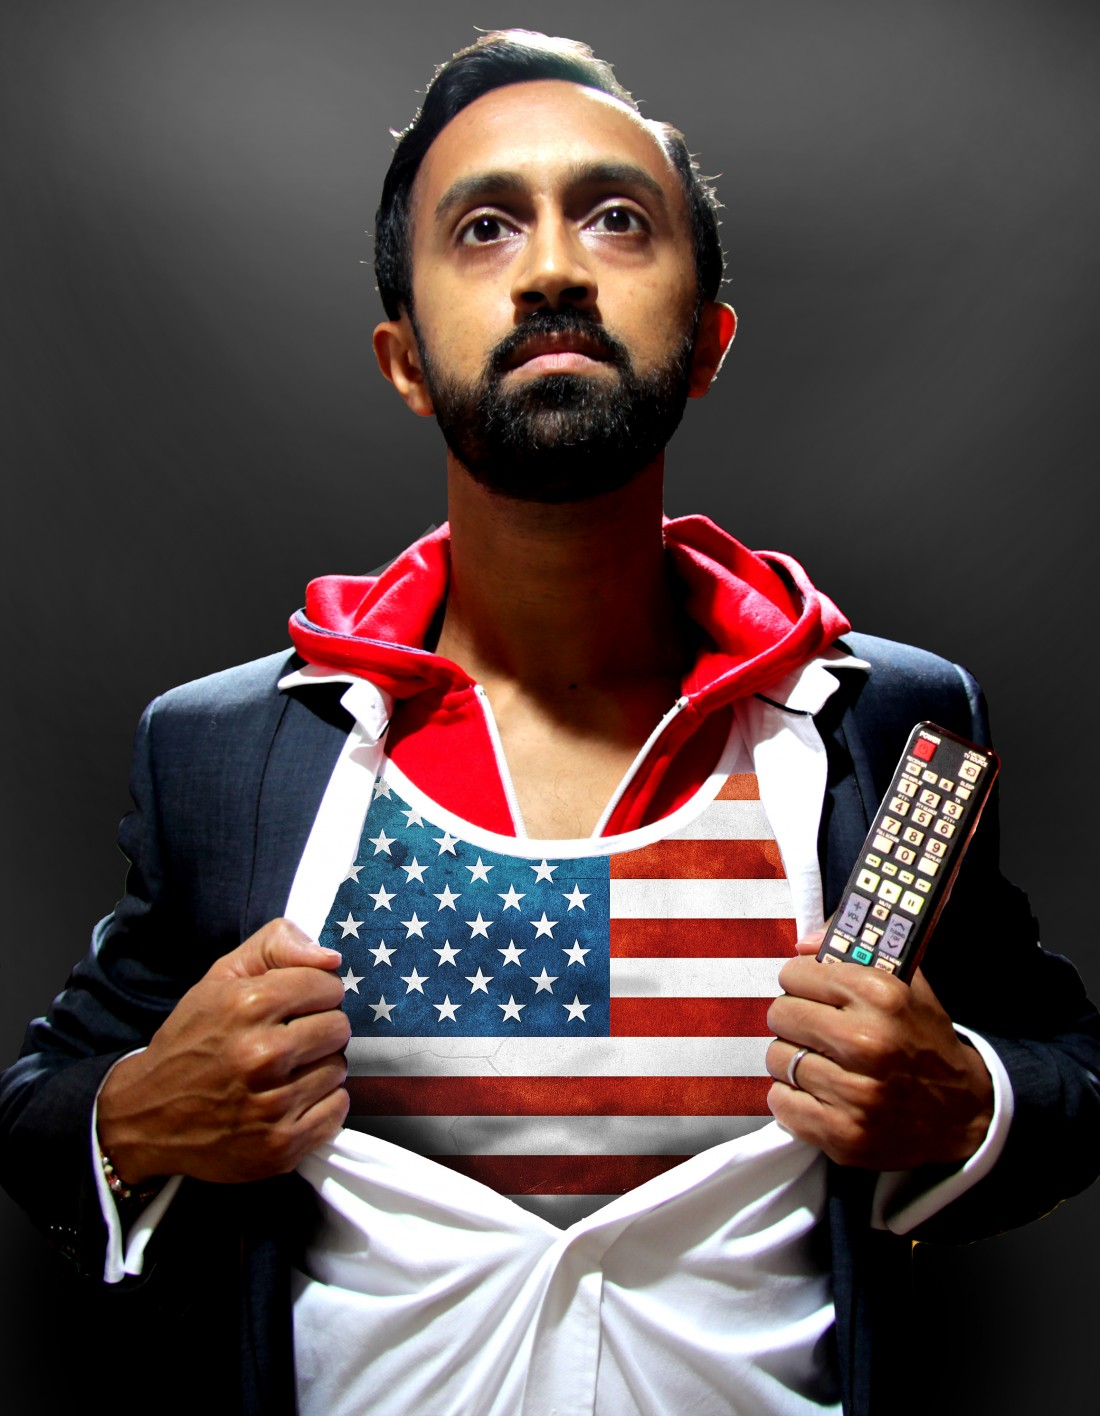 Preview of 'American Boy' by Hetain Patel. Thursday 8th May 2014. LICA Building, Lancaster.